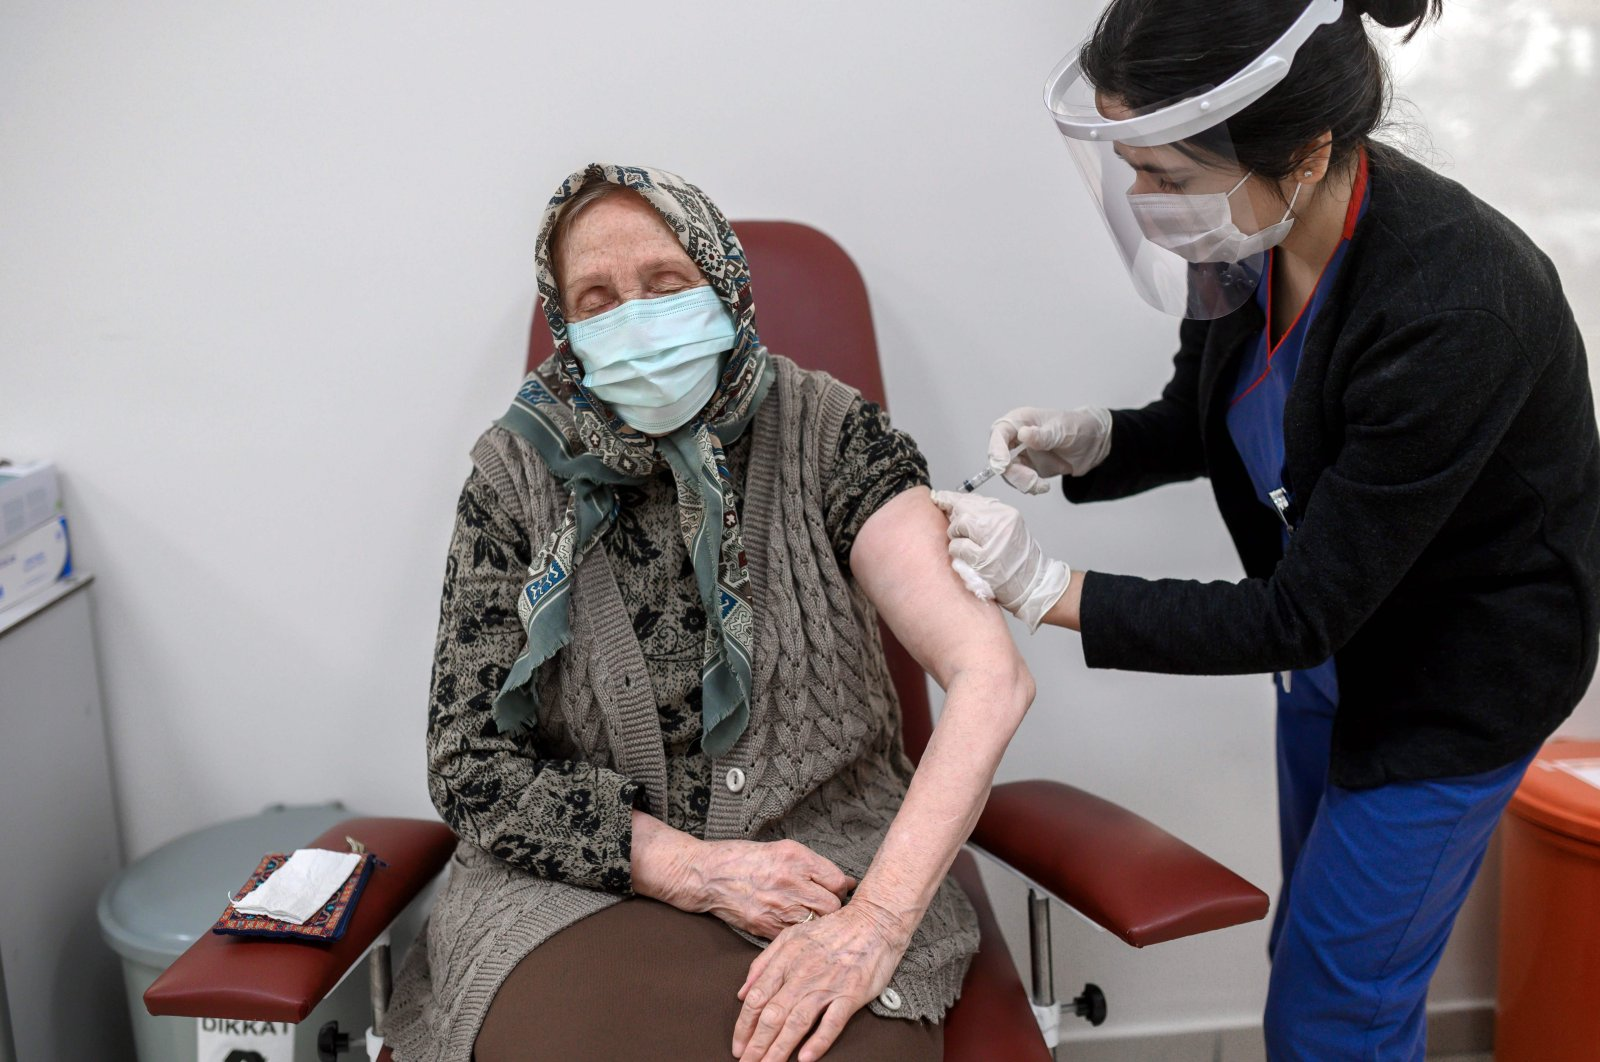 A woman receives an injection of the CoronaVac COVID-19 vaccine at a hospital in Istanbul, Turkey, Jan. 28, 2021 (AFP Photo)